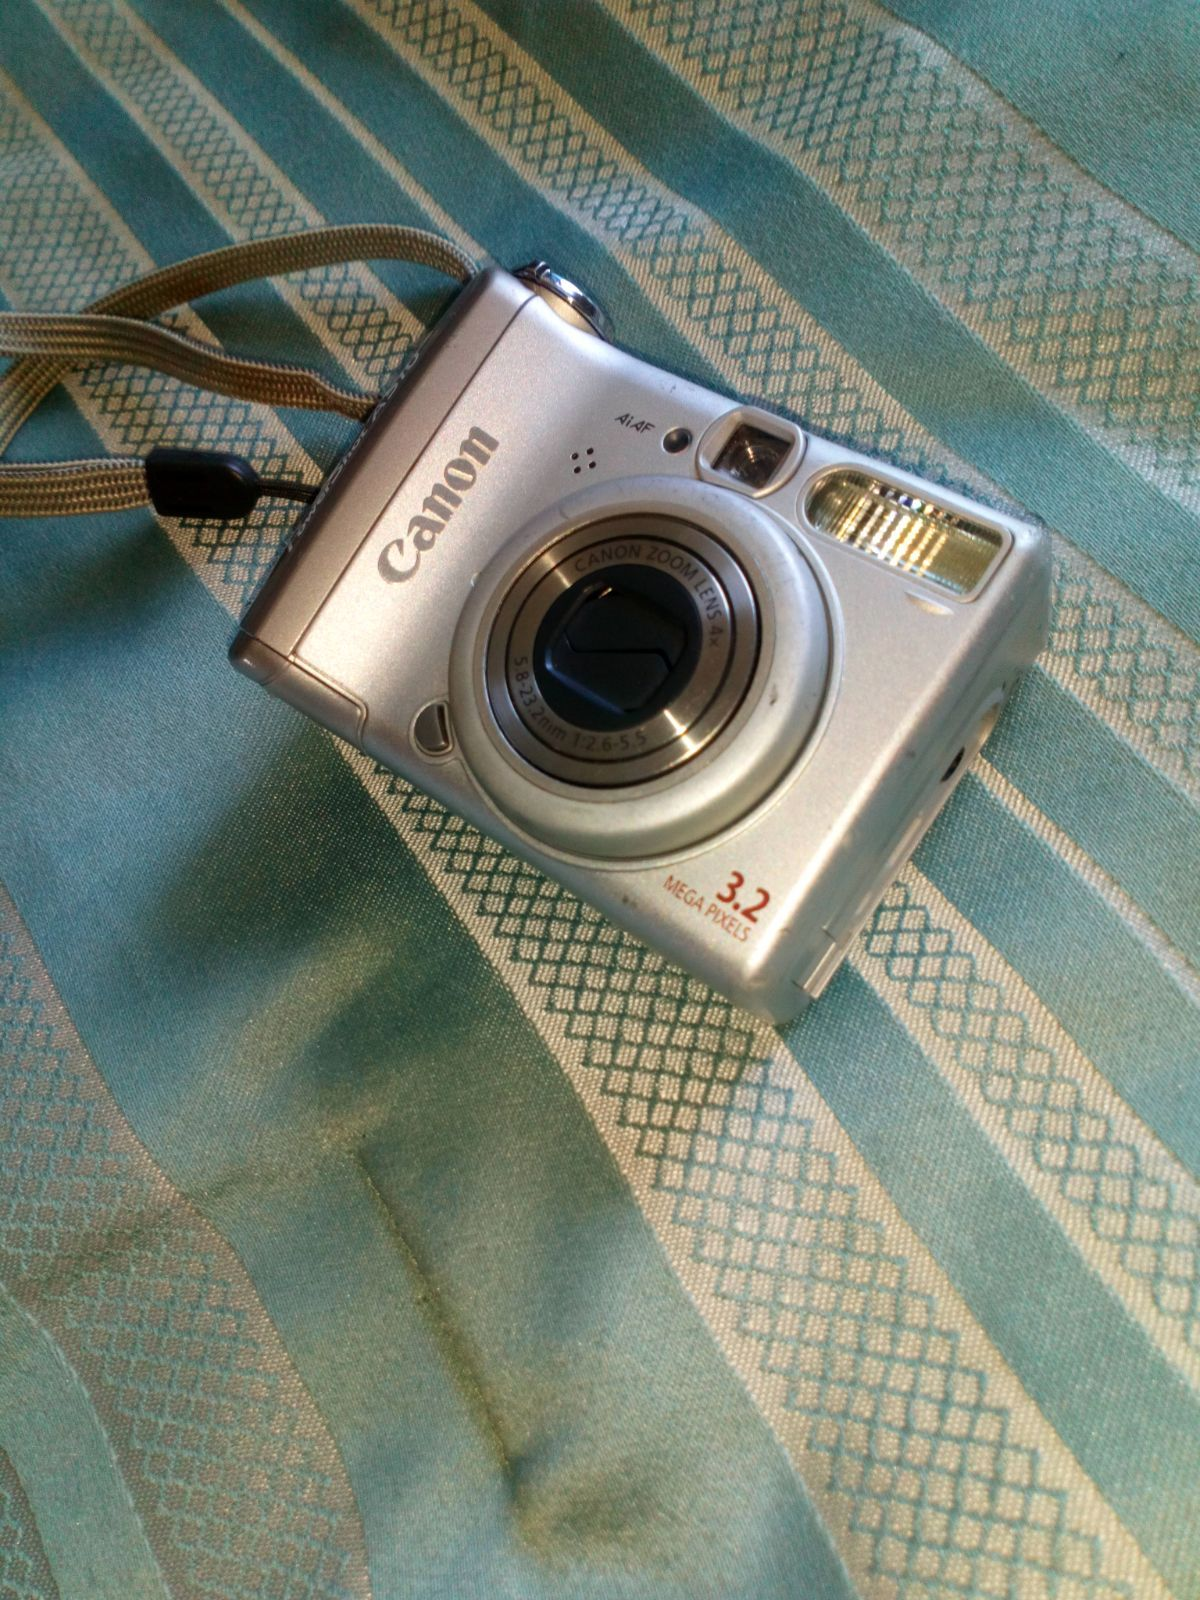 Tested And Verified To Be In Good Working Condition Please View Photos For Complete Item Details Digital Camera Powershot Camera